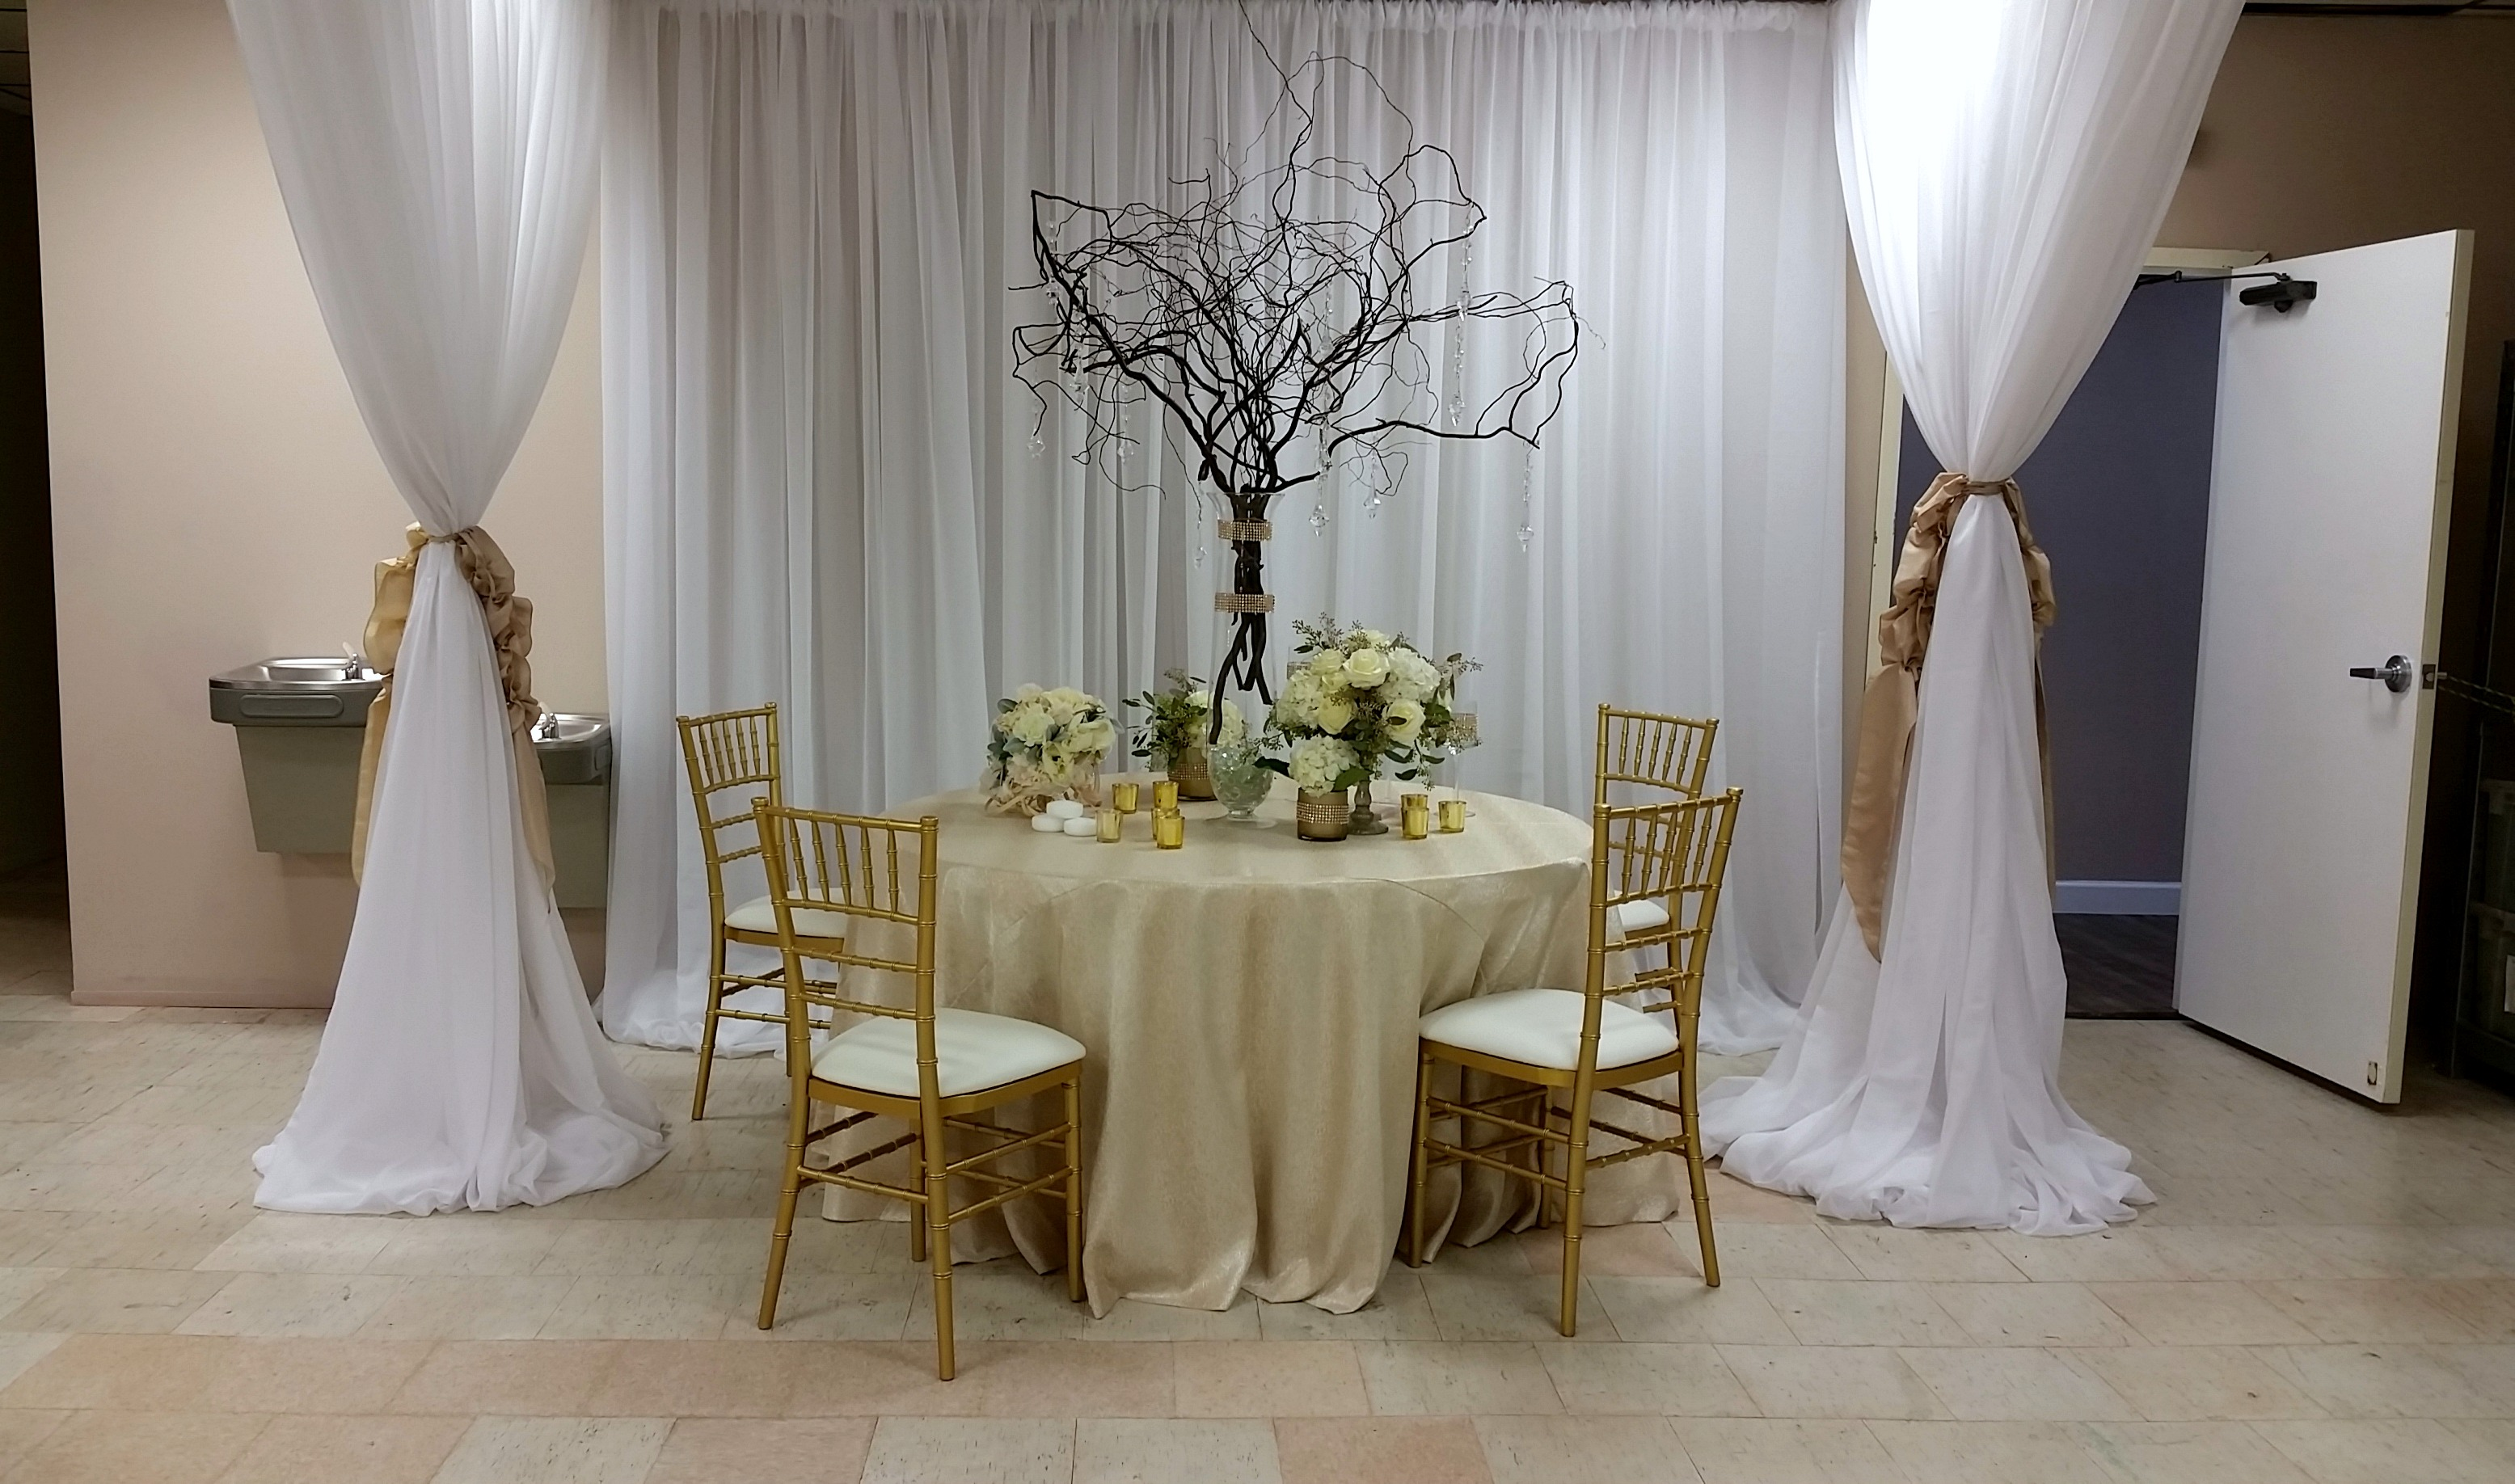 Special Occasions Linen Rental & Event Design, Grand Blanc MI